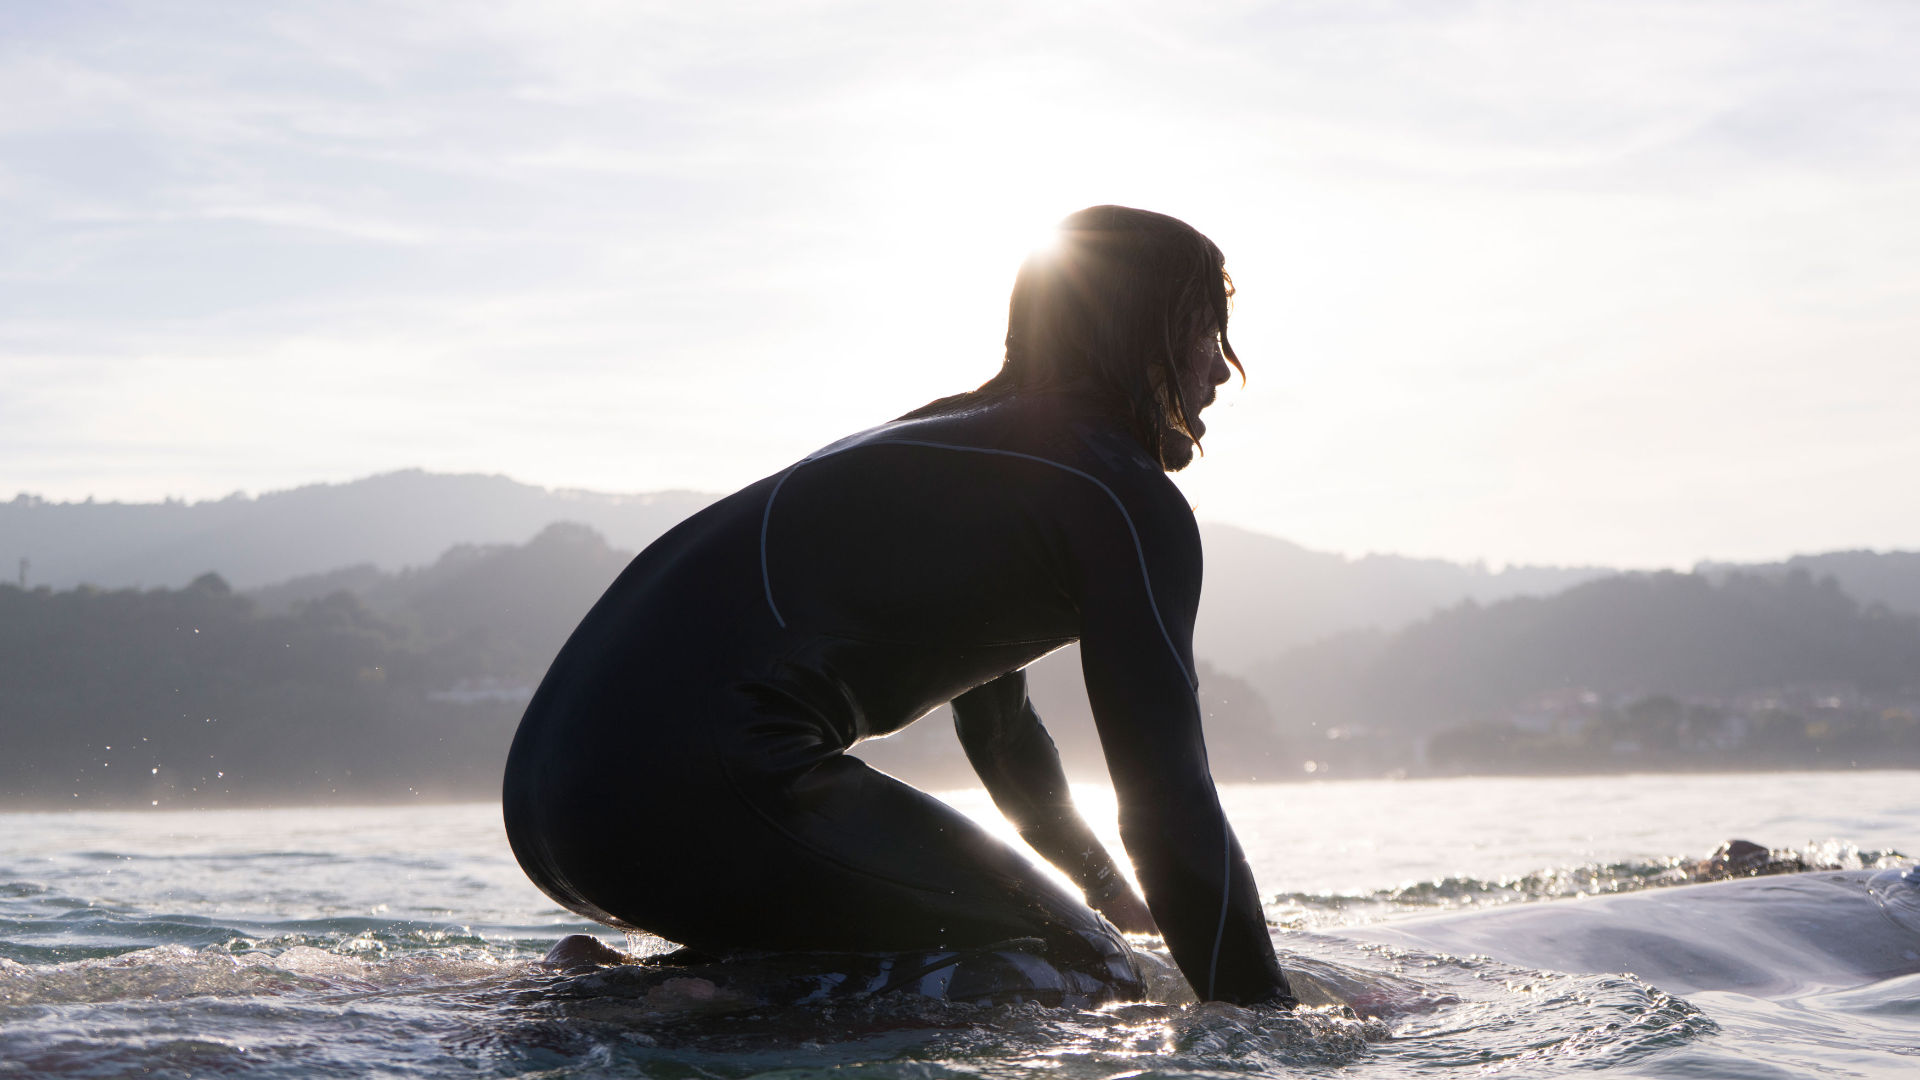 A man sitting on his surfboard in the sea wearing a wetsuit